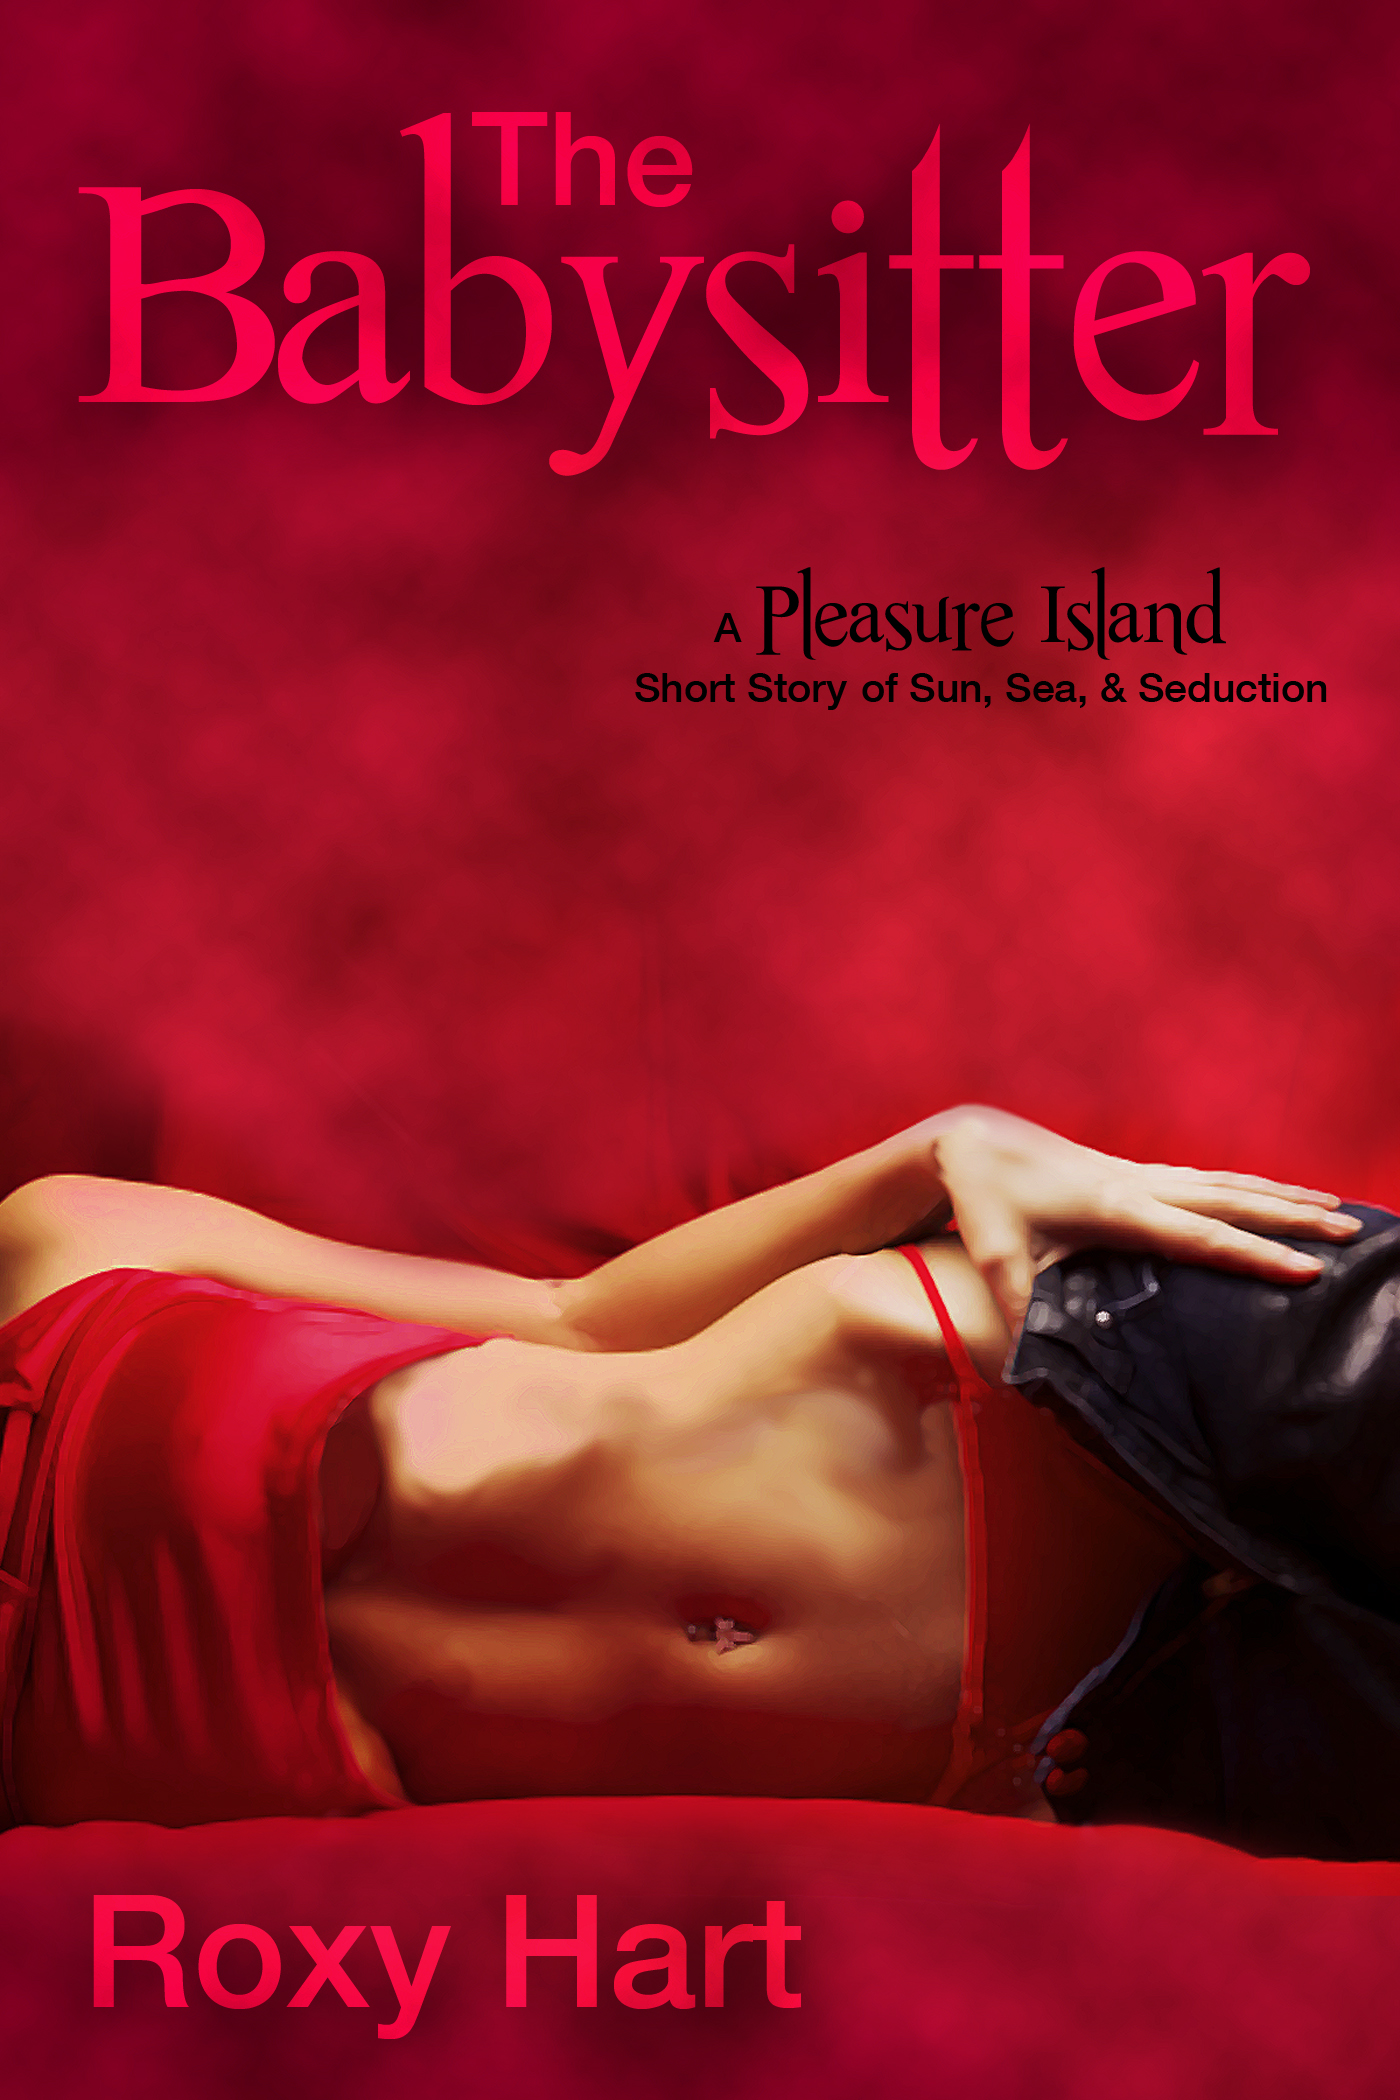 Roxy Hart - The Babysitter - An Erotic Short Story